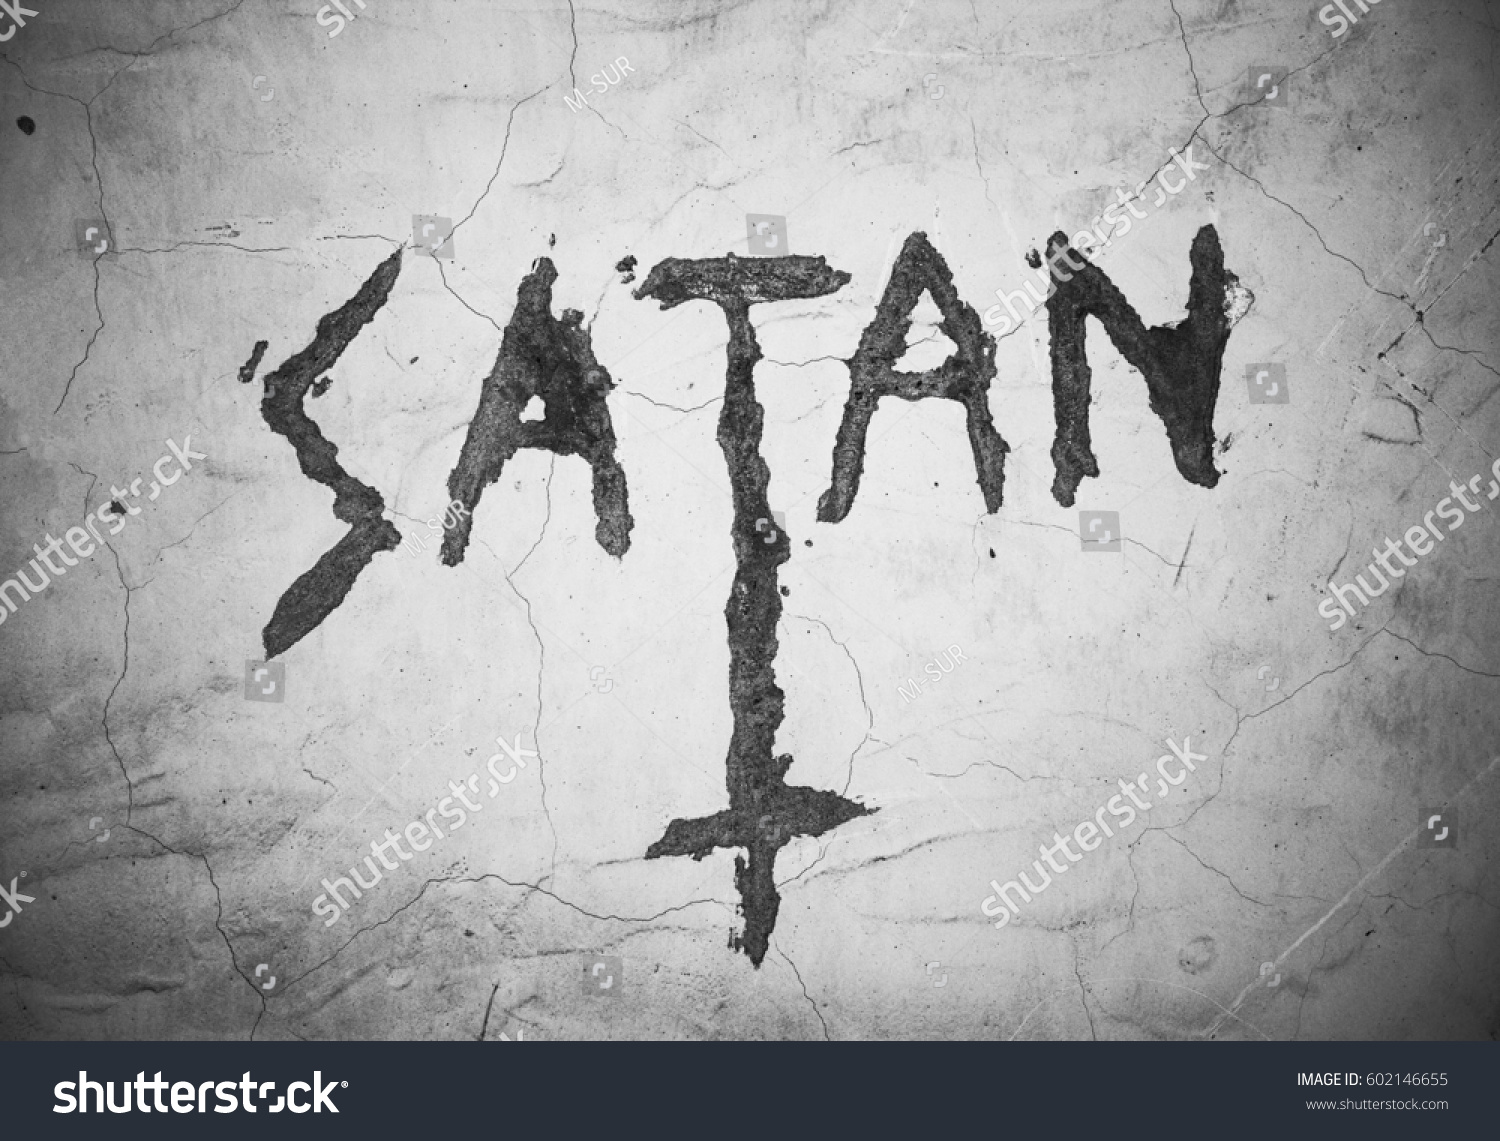 Text satan upturned christian cross writing stock photo 602146655 text satan an upturned christian cross writing and symbol on the cracked wall sign biocorpaavc Choice Image